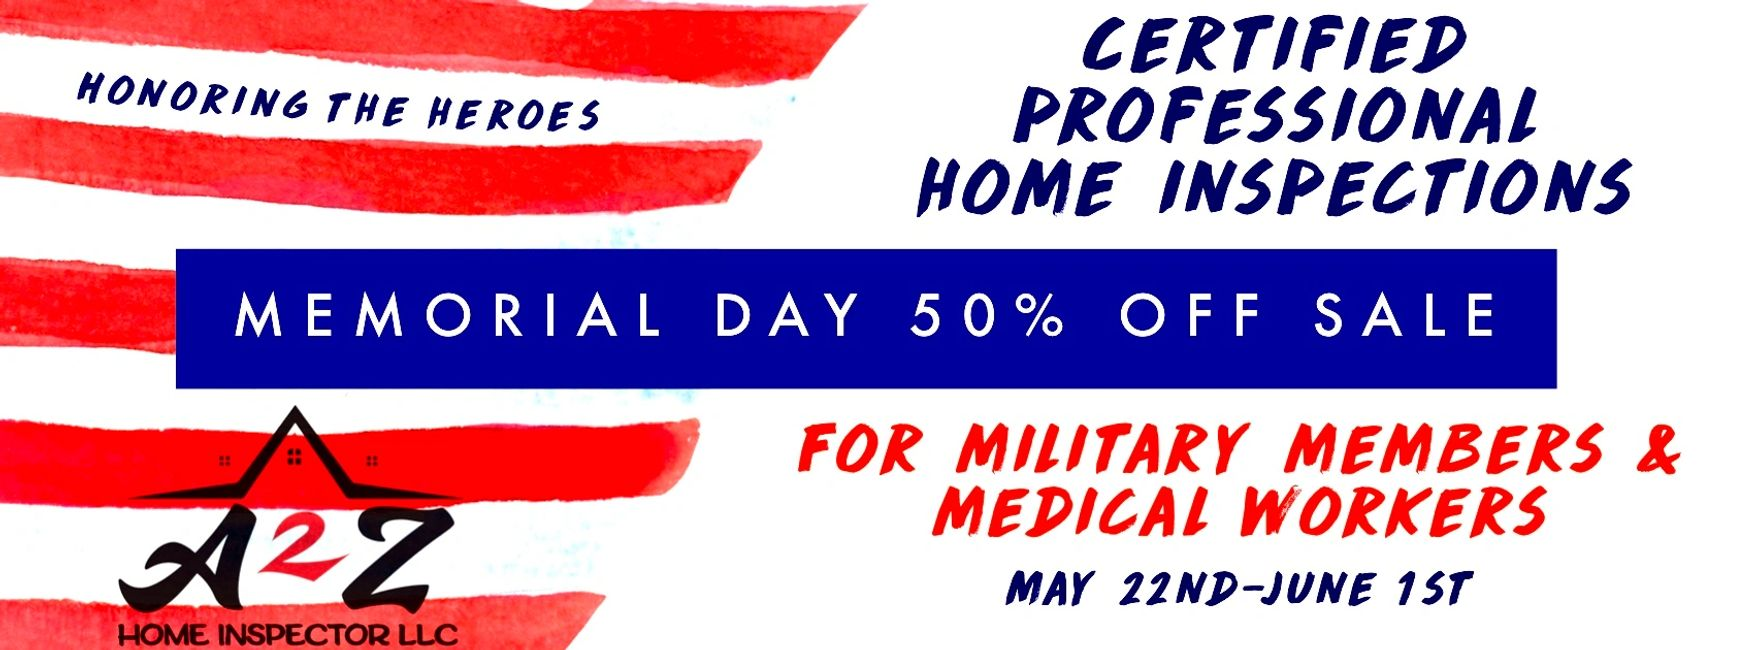 Home inspection 50% sale off until June 1st. For all military members and medical workers.